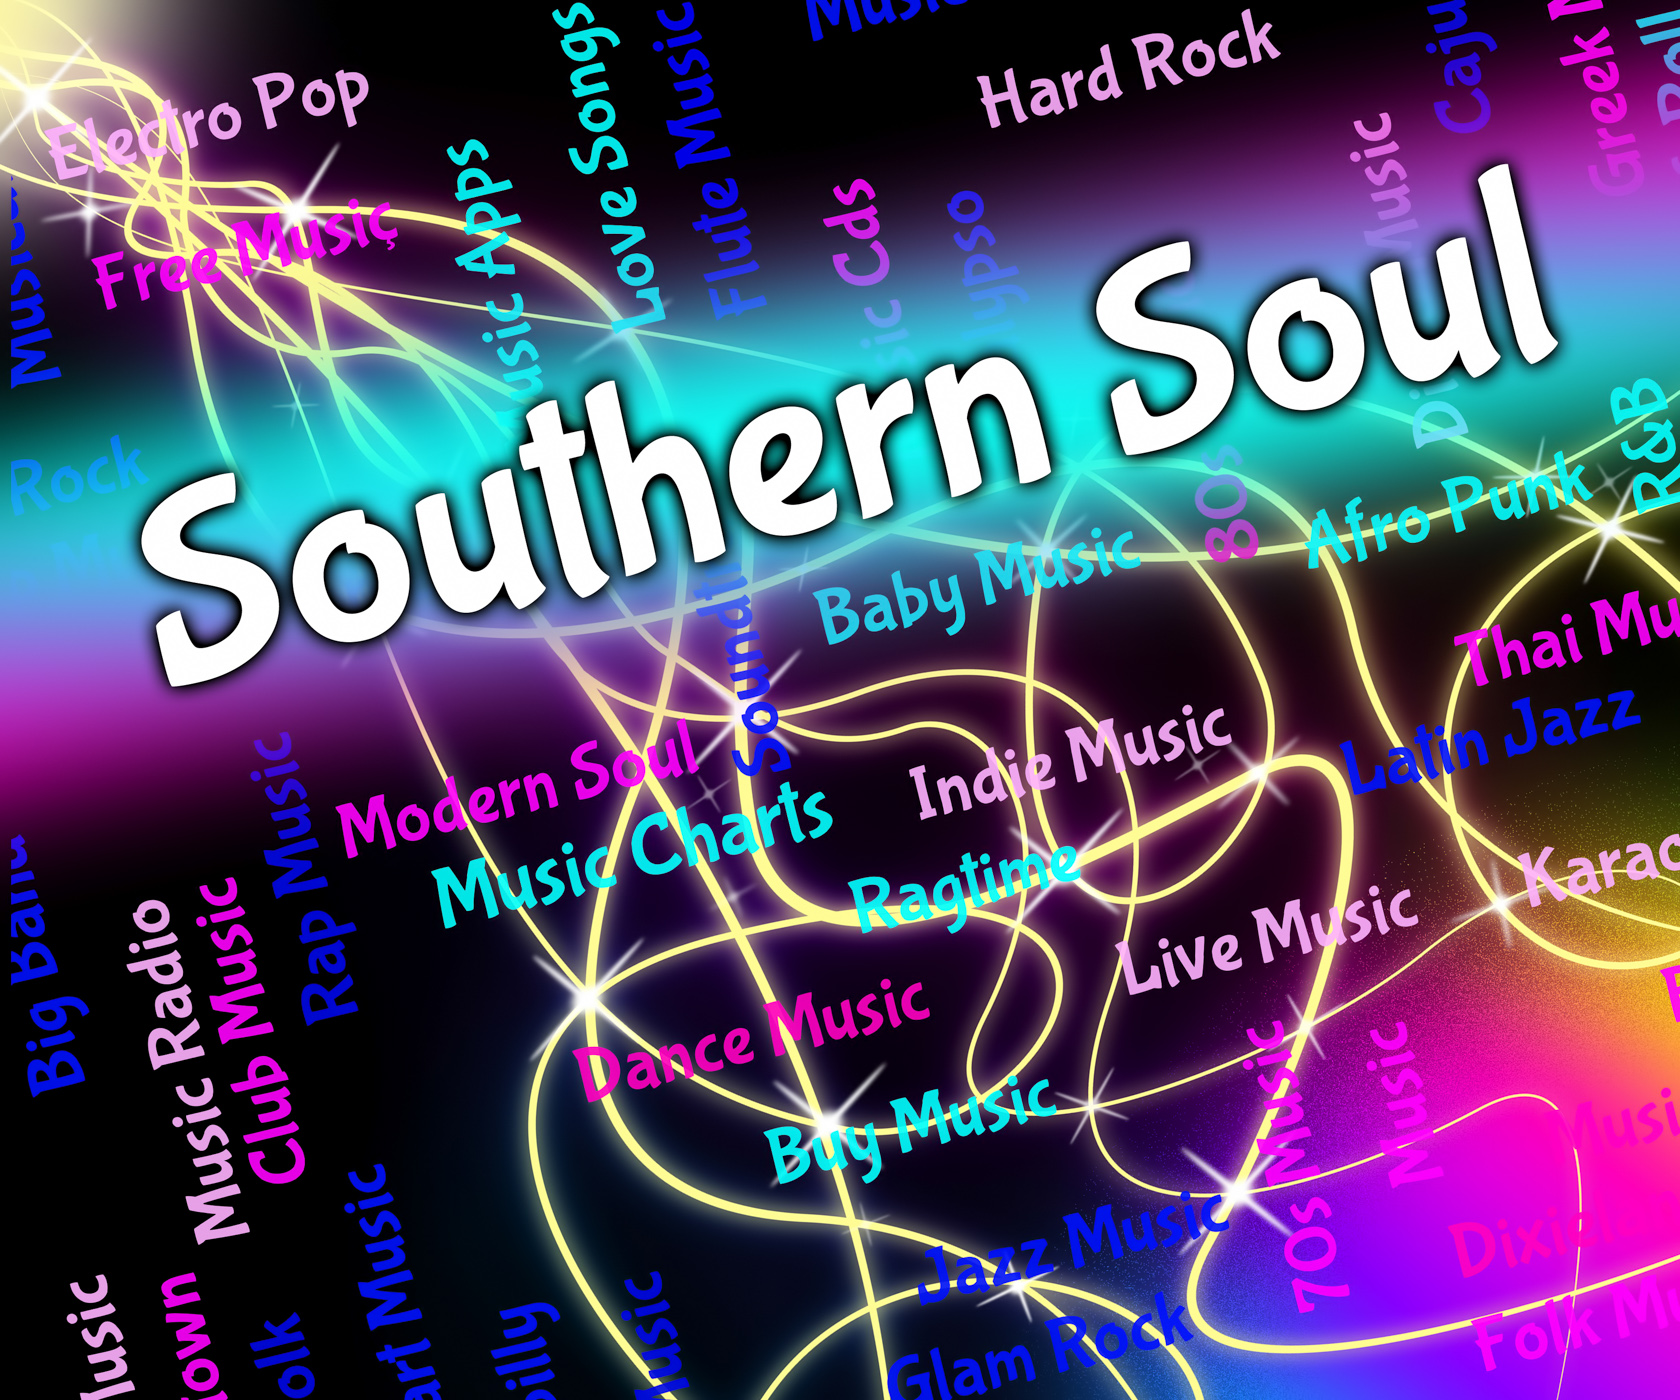 Southern soul shows american gospel music and blues photo